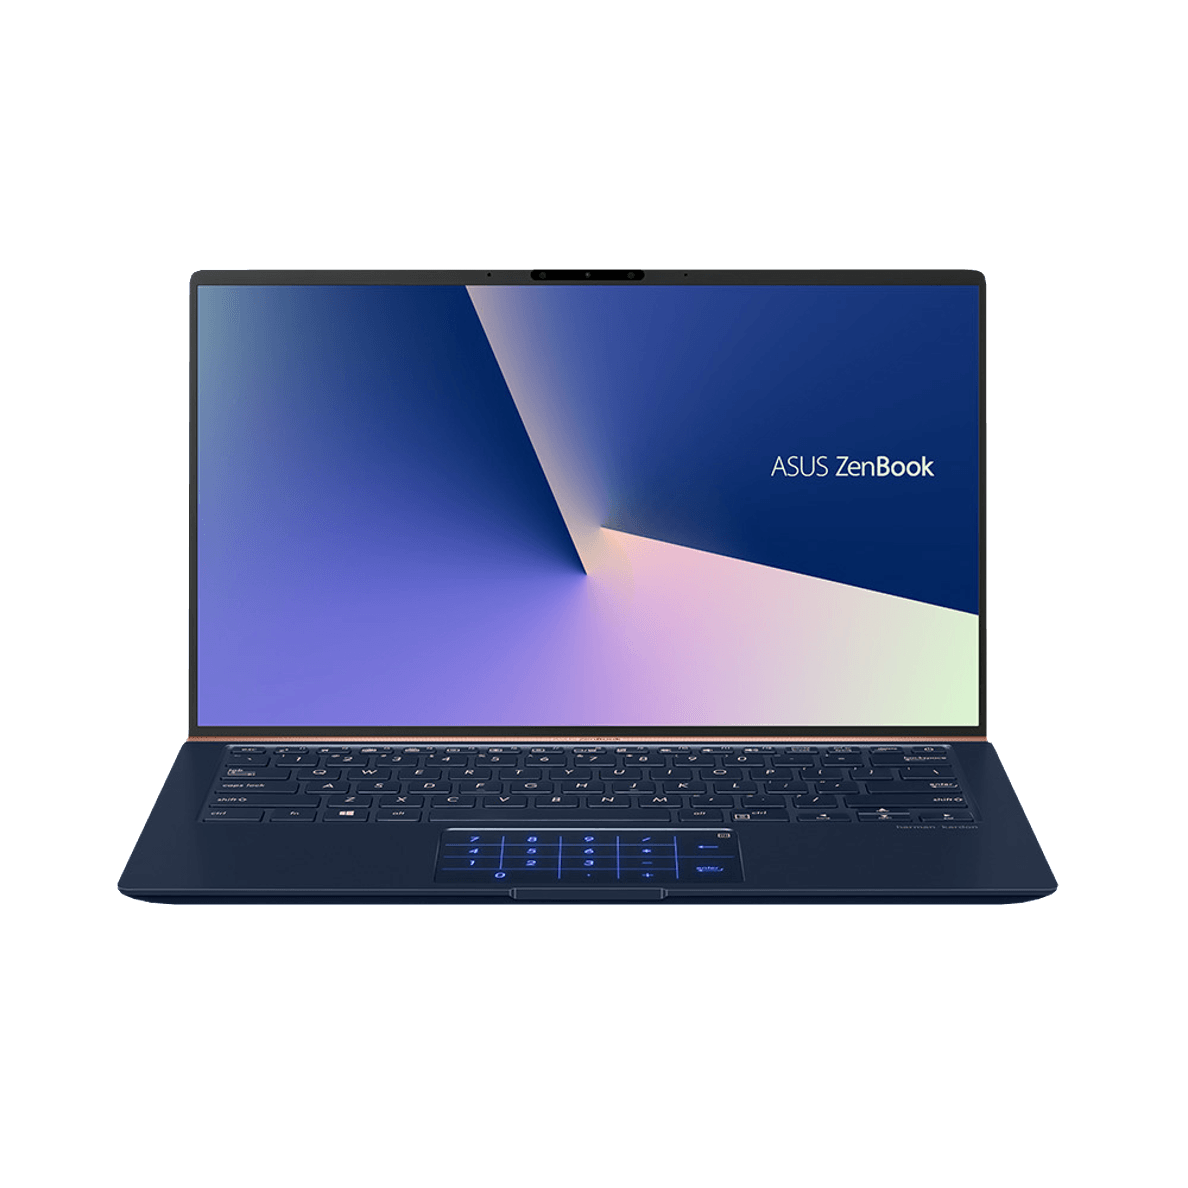 Asus Ux433fn A6532t Notebook Mit Core I7 16 Gb Ram 256 Gb Geforce Mx150 In Royal Blue Glass 04718017129374 Asus Media Markt Usb Notebook Hulle